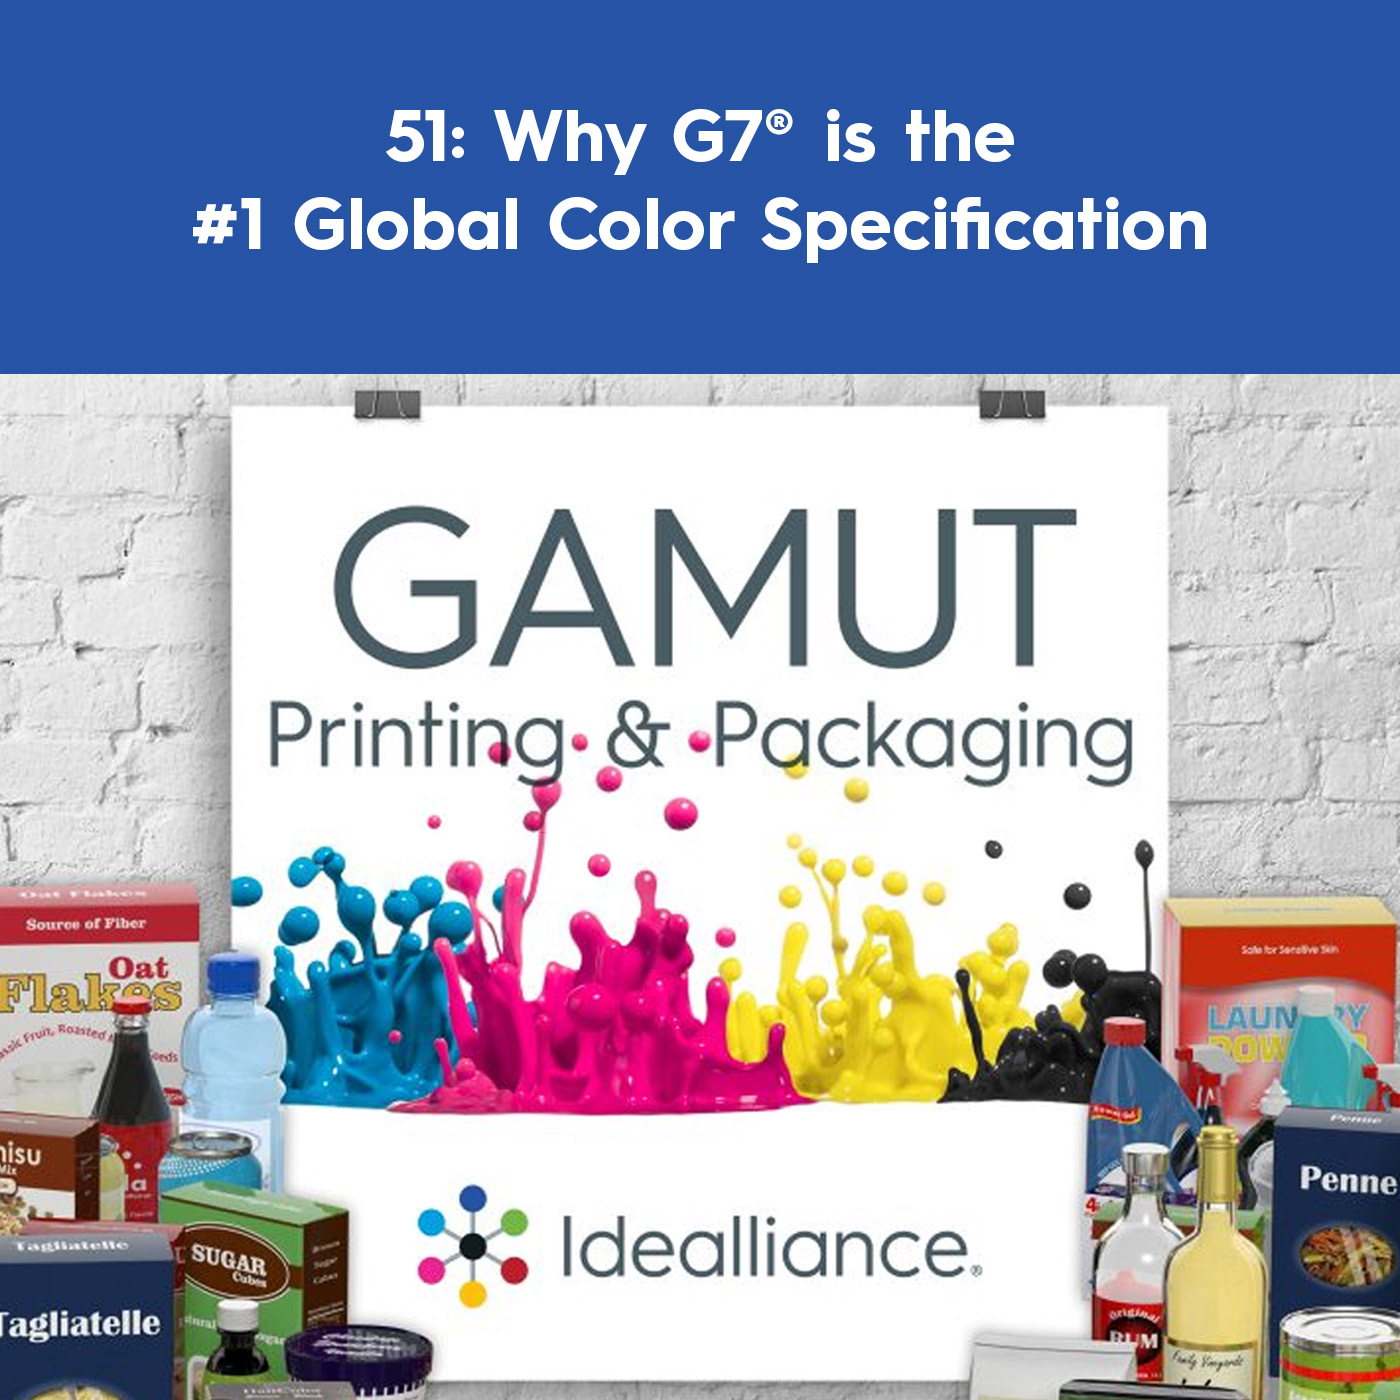 Gamut Printing & Packaging Podcast #51 from Idealliance: Why G7® is the #1 Global Color Specification